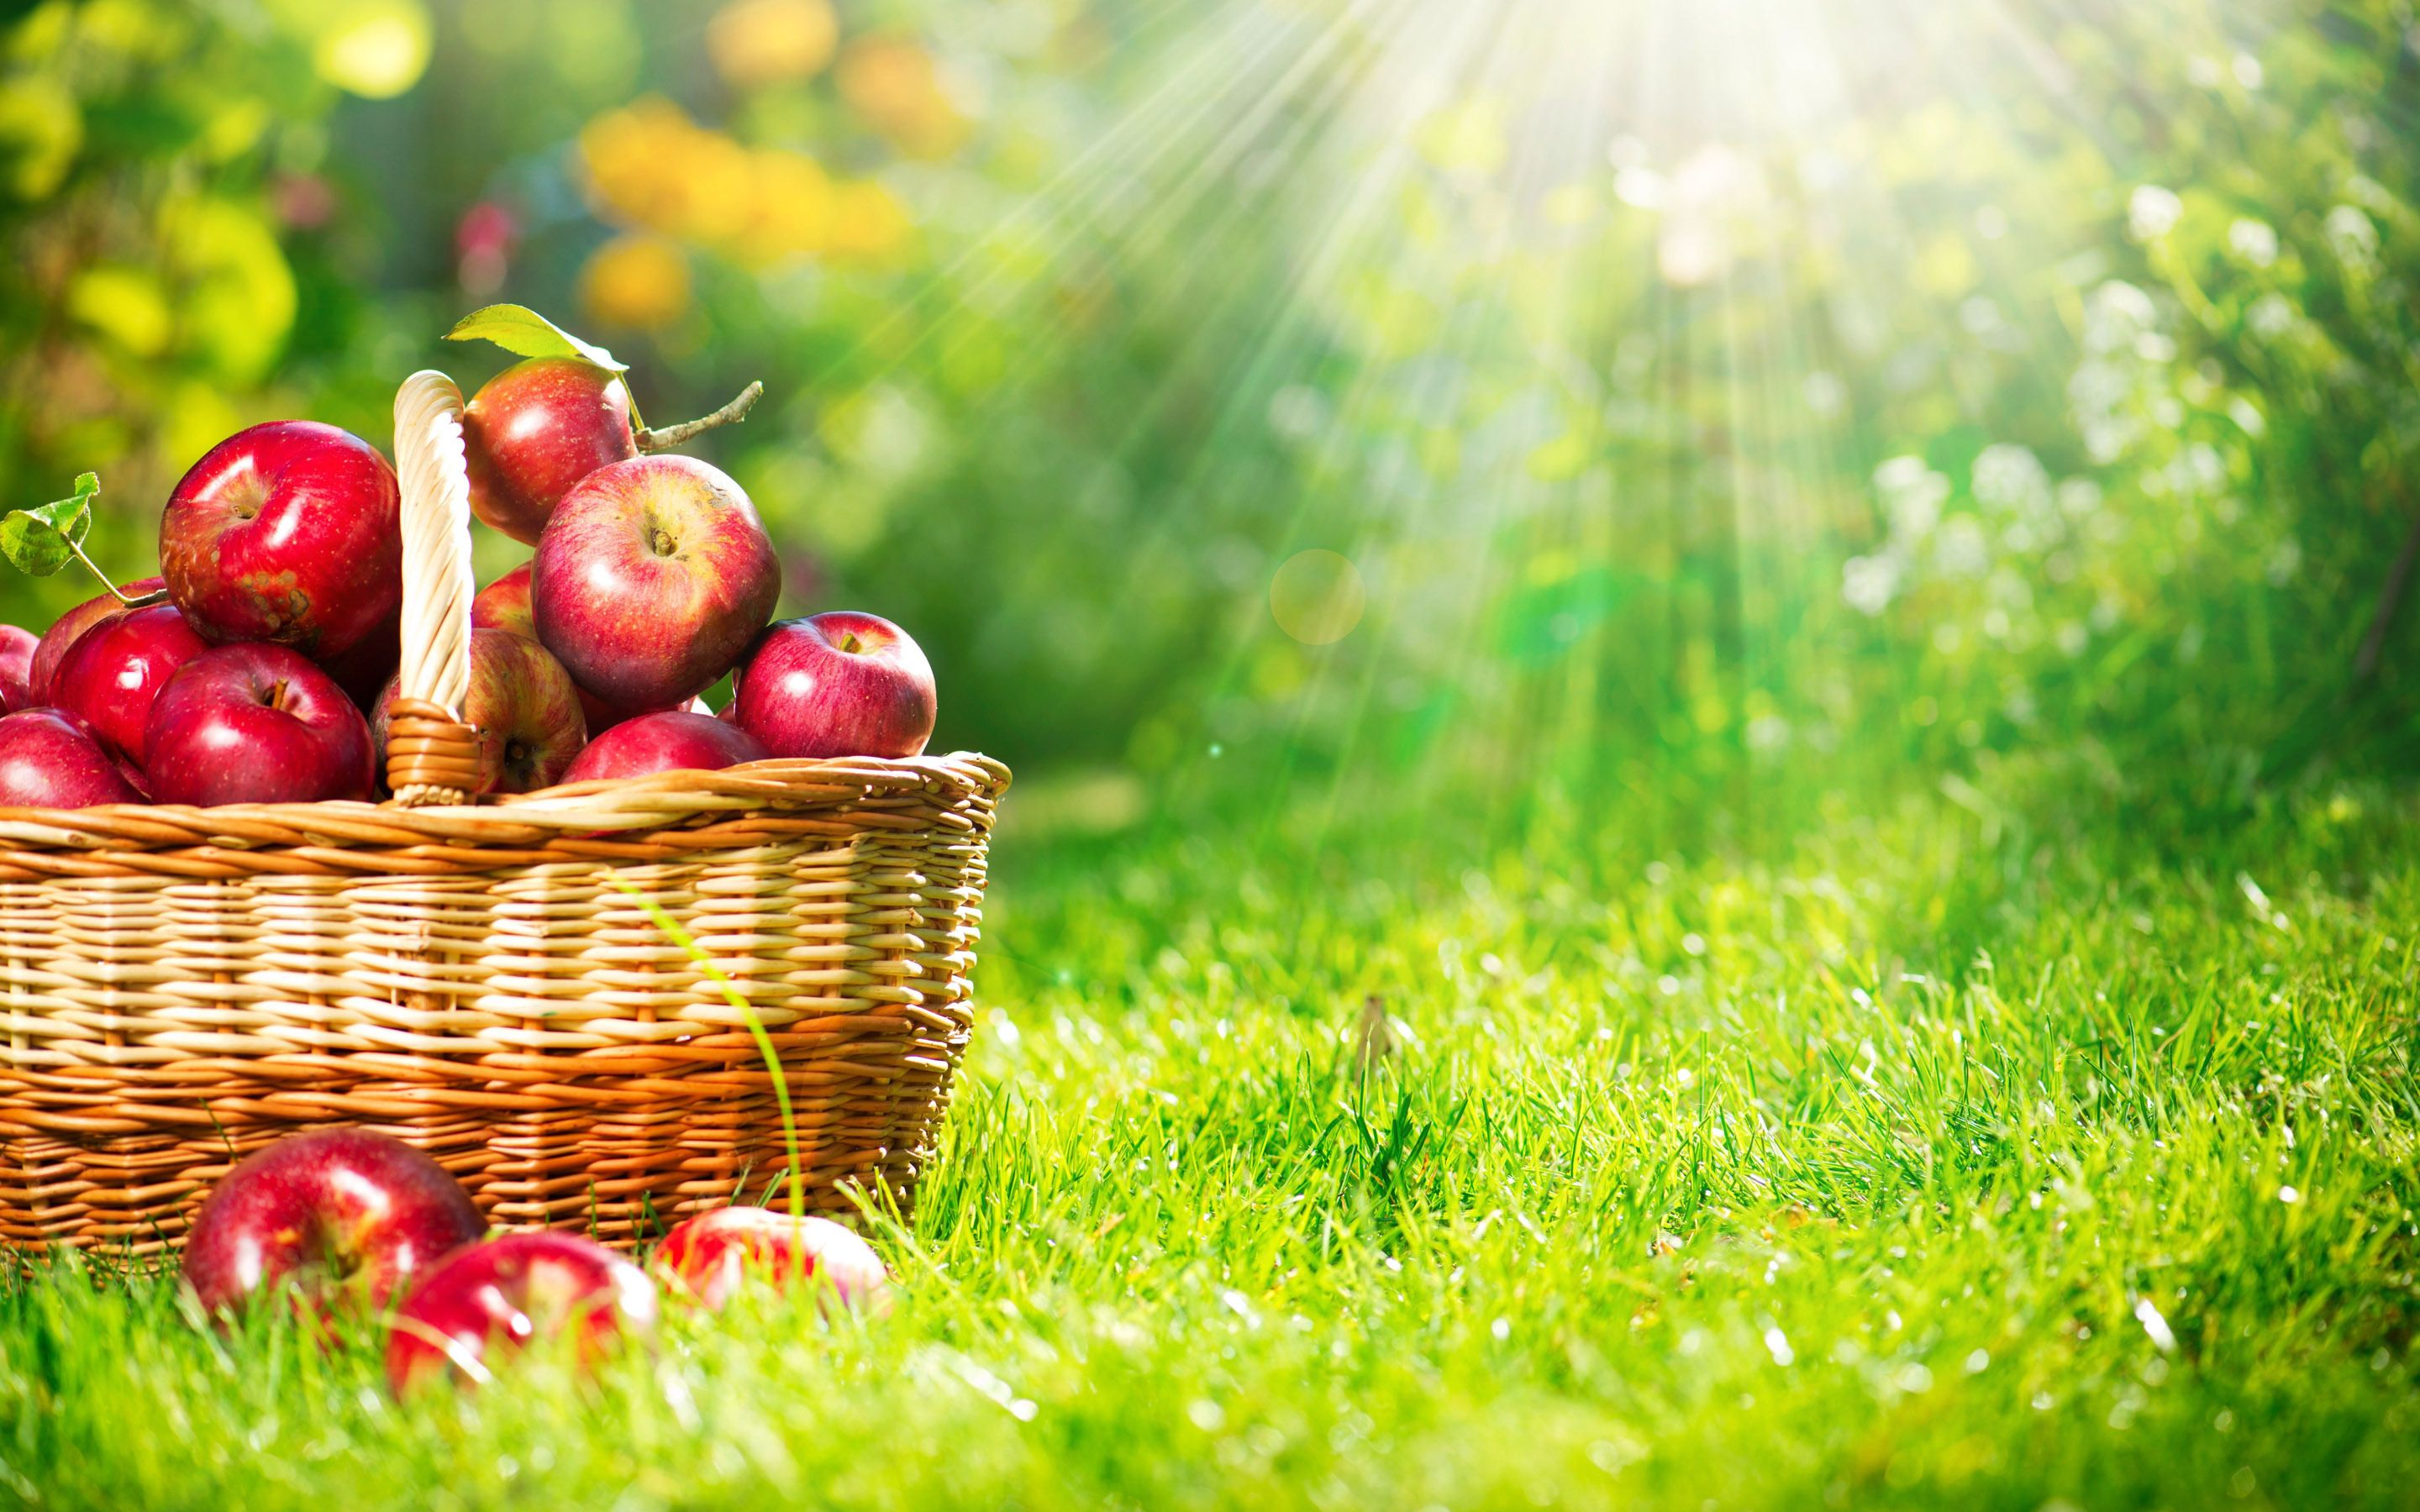 apple fruit wallpapers find best latest apple fruit wallpapers in hd for your pc desktop